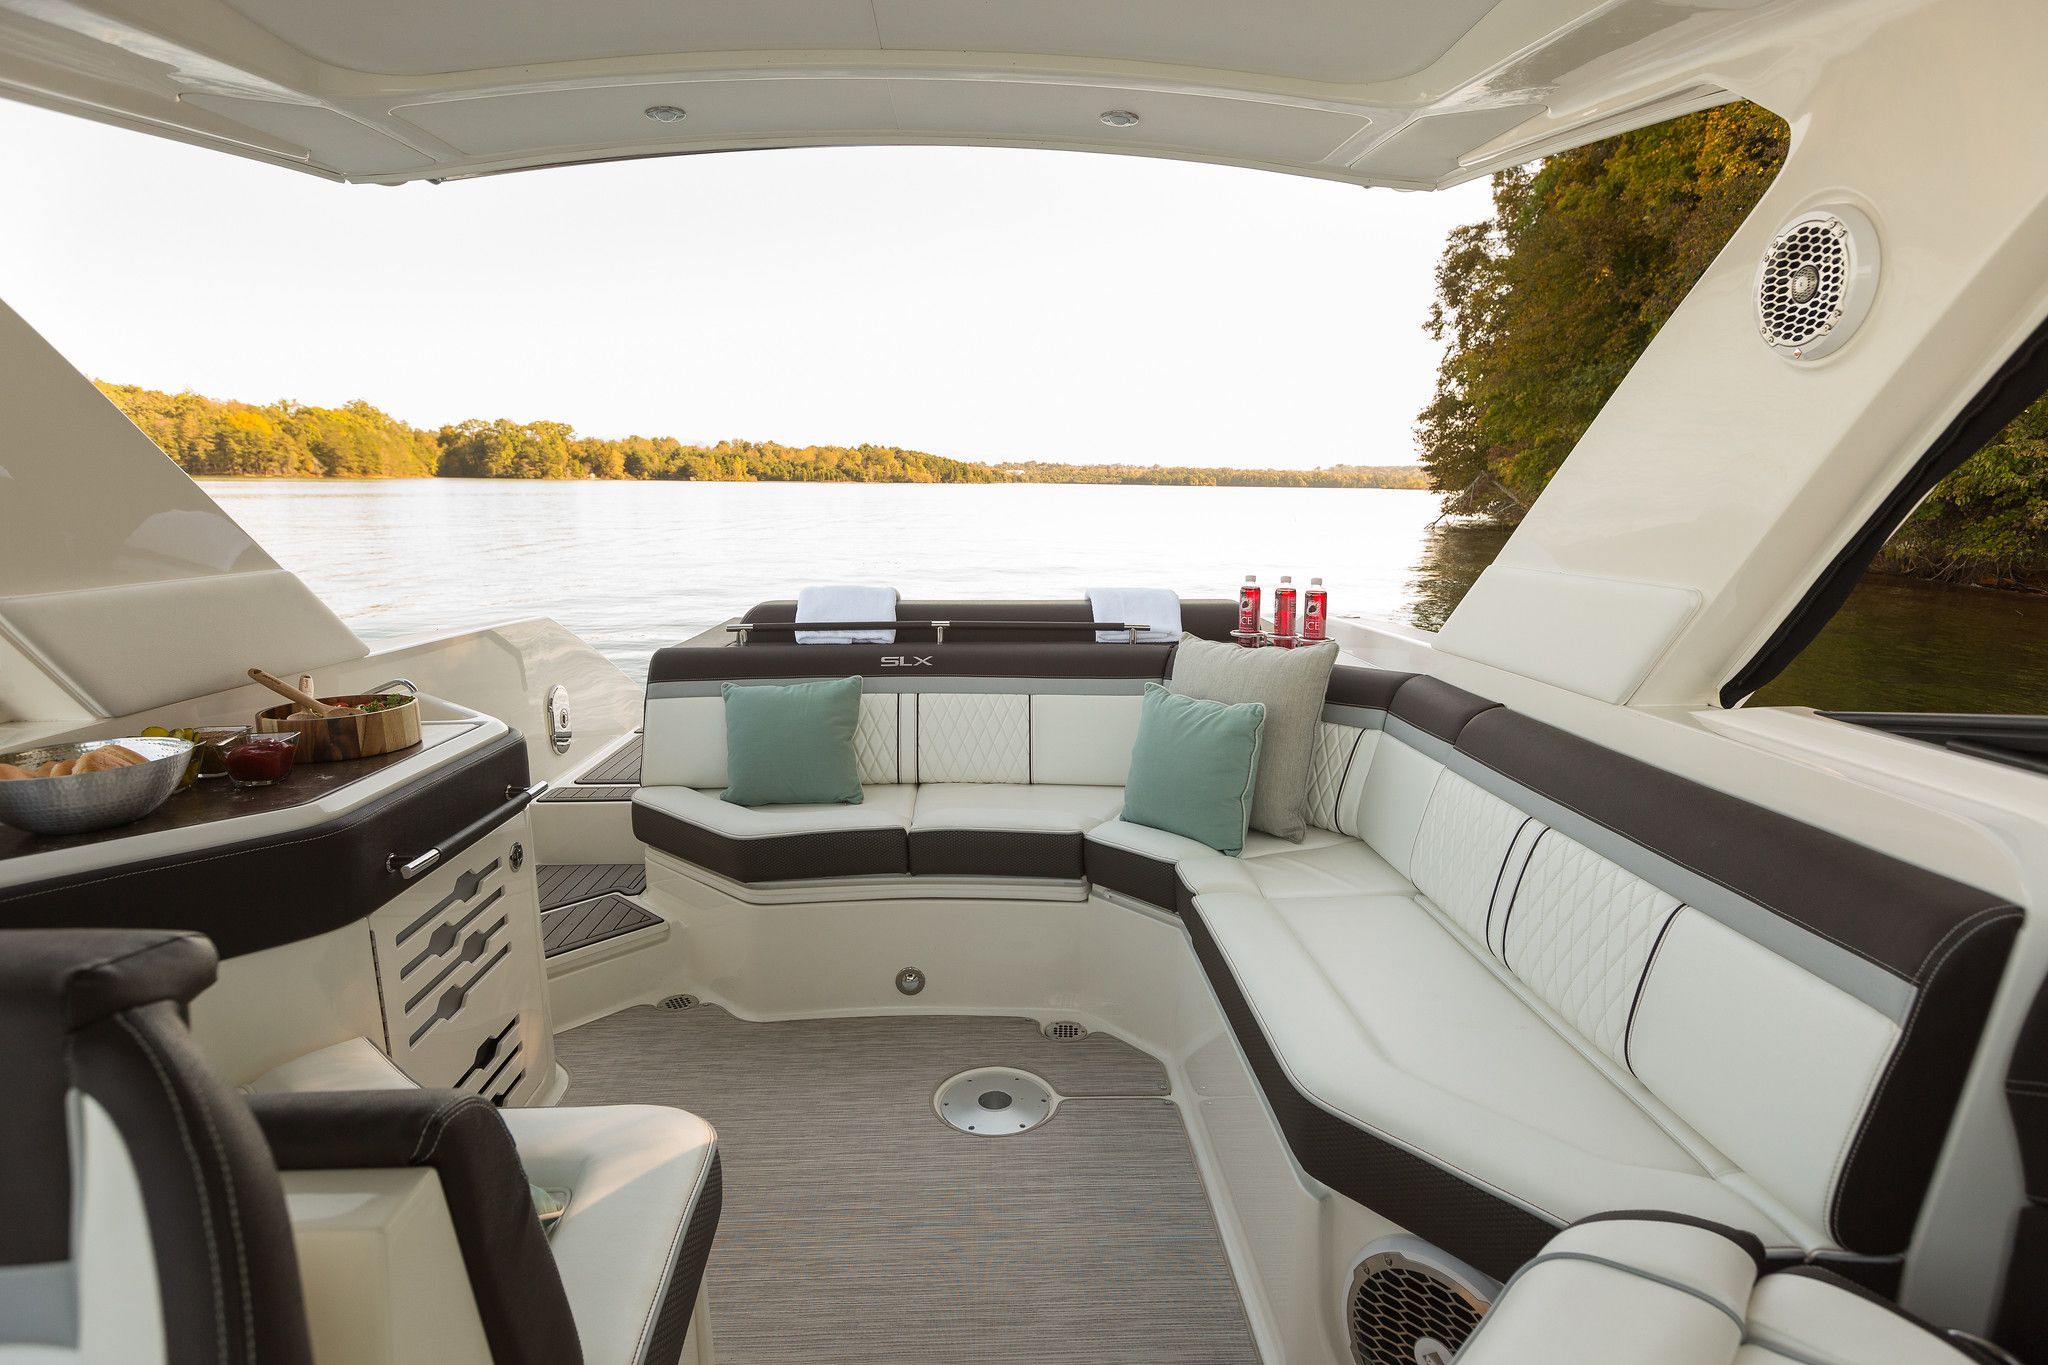 Sand Upholstery Searay Boat Dreams Upholstery Colorful